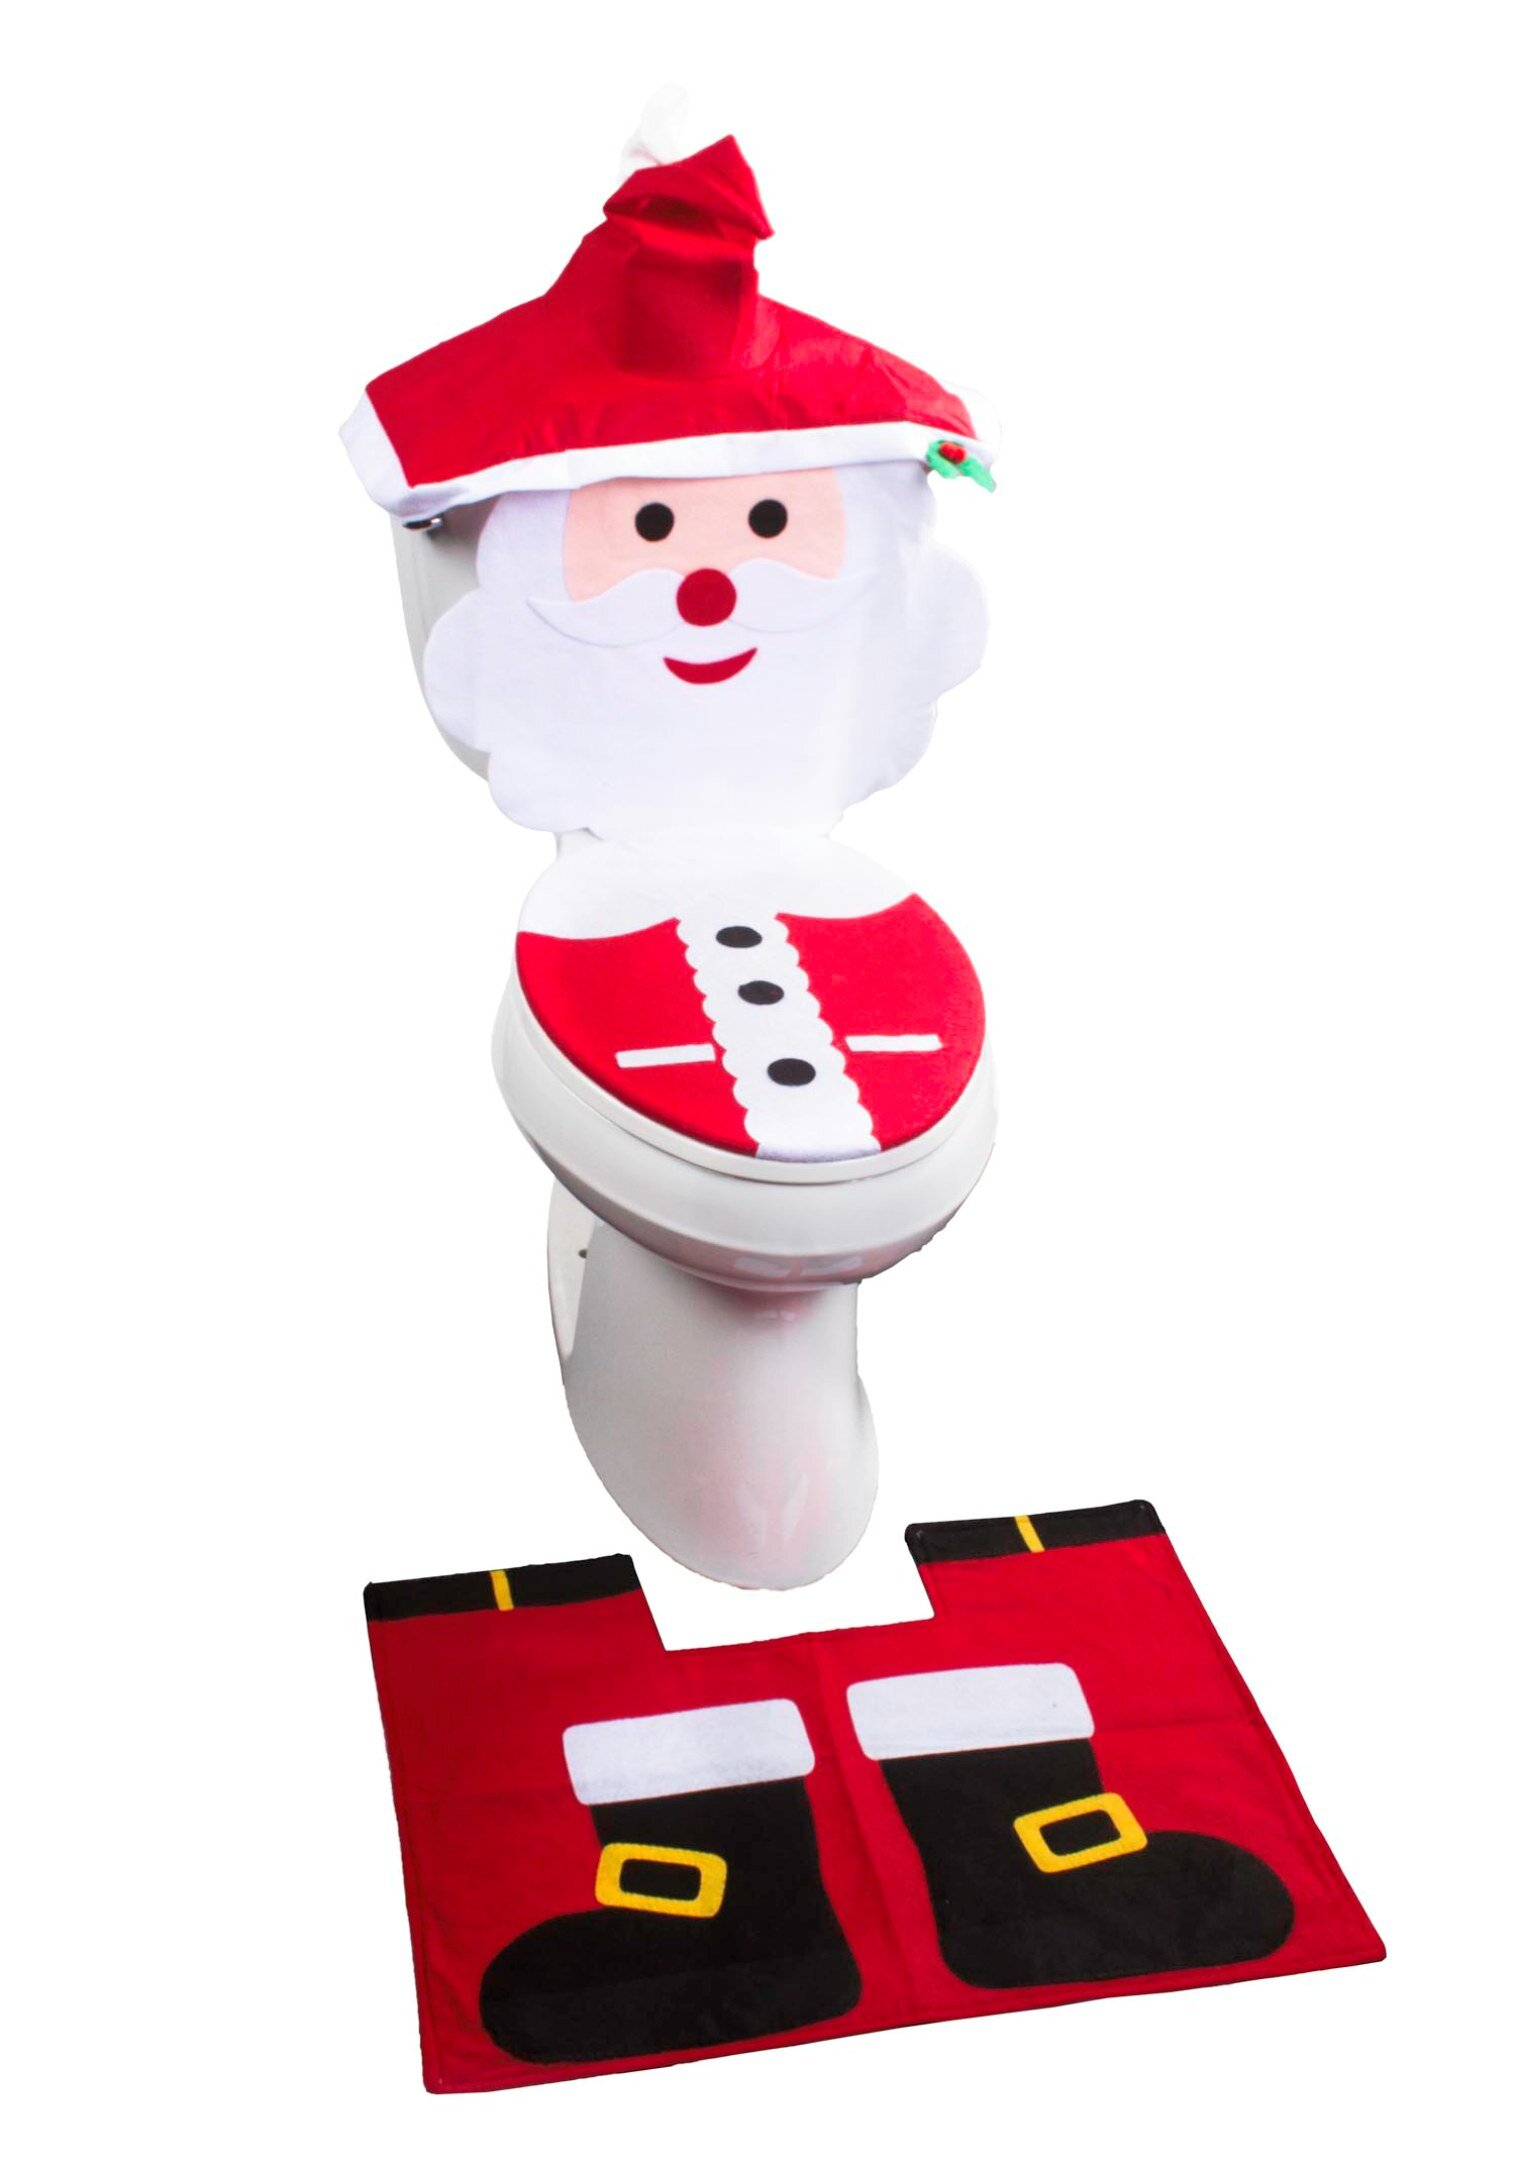 The Holiday Aisle 4 Piece Christmas Santa Face Bathroom Toilet Seat Cover And Rug Set Reviews